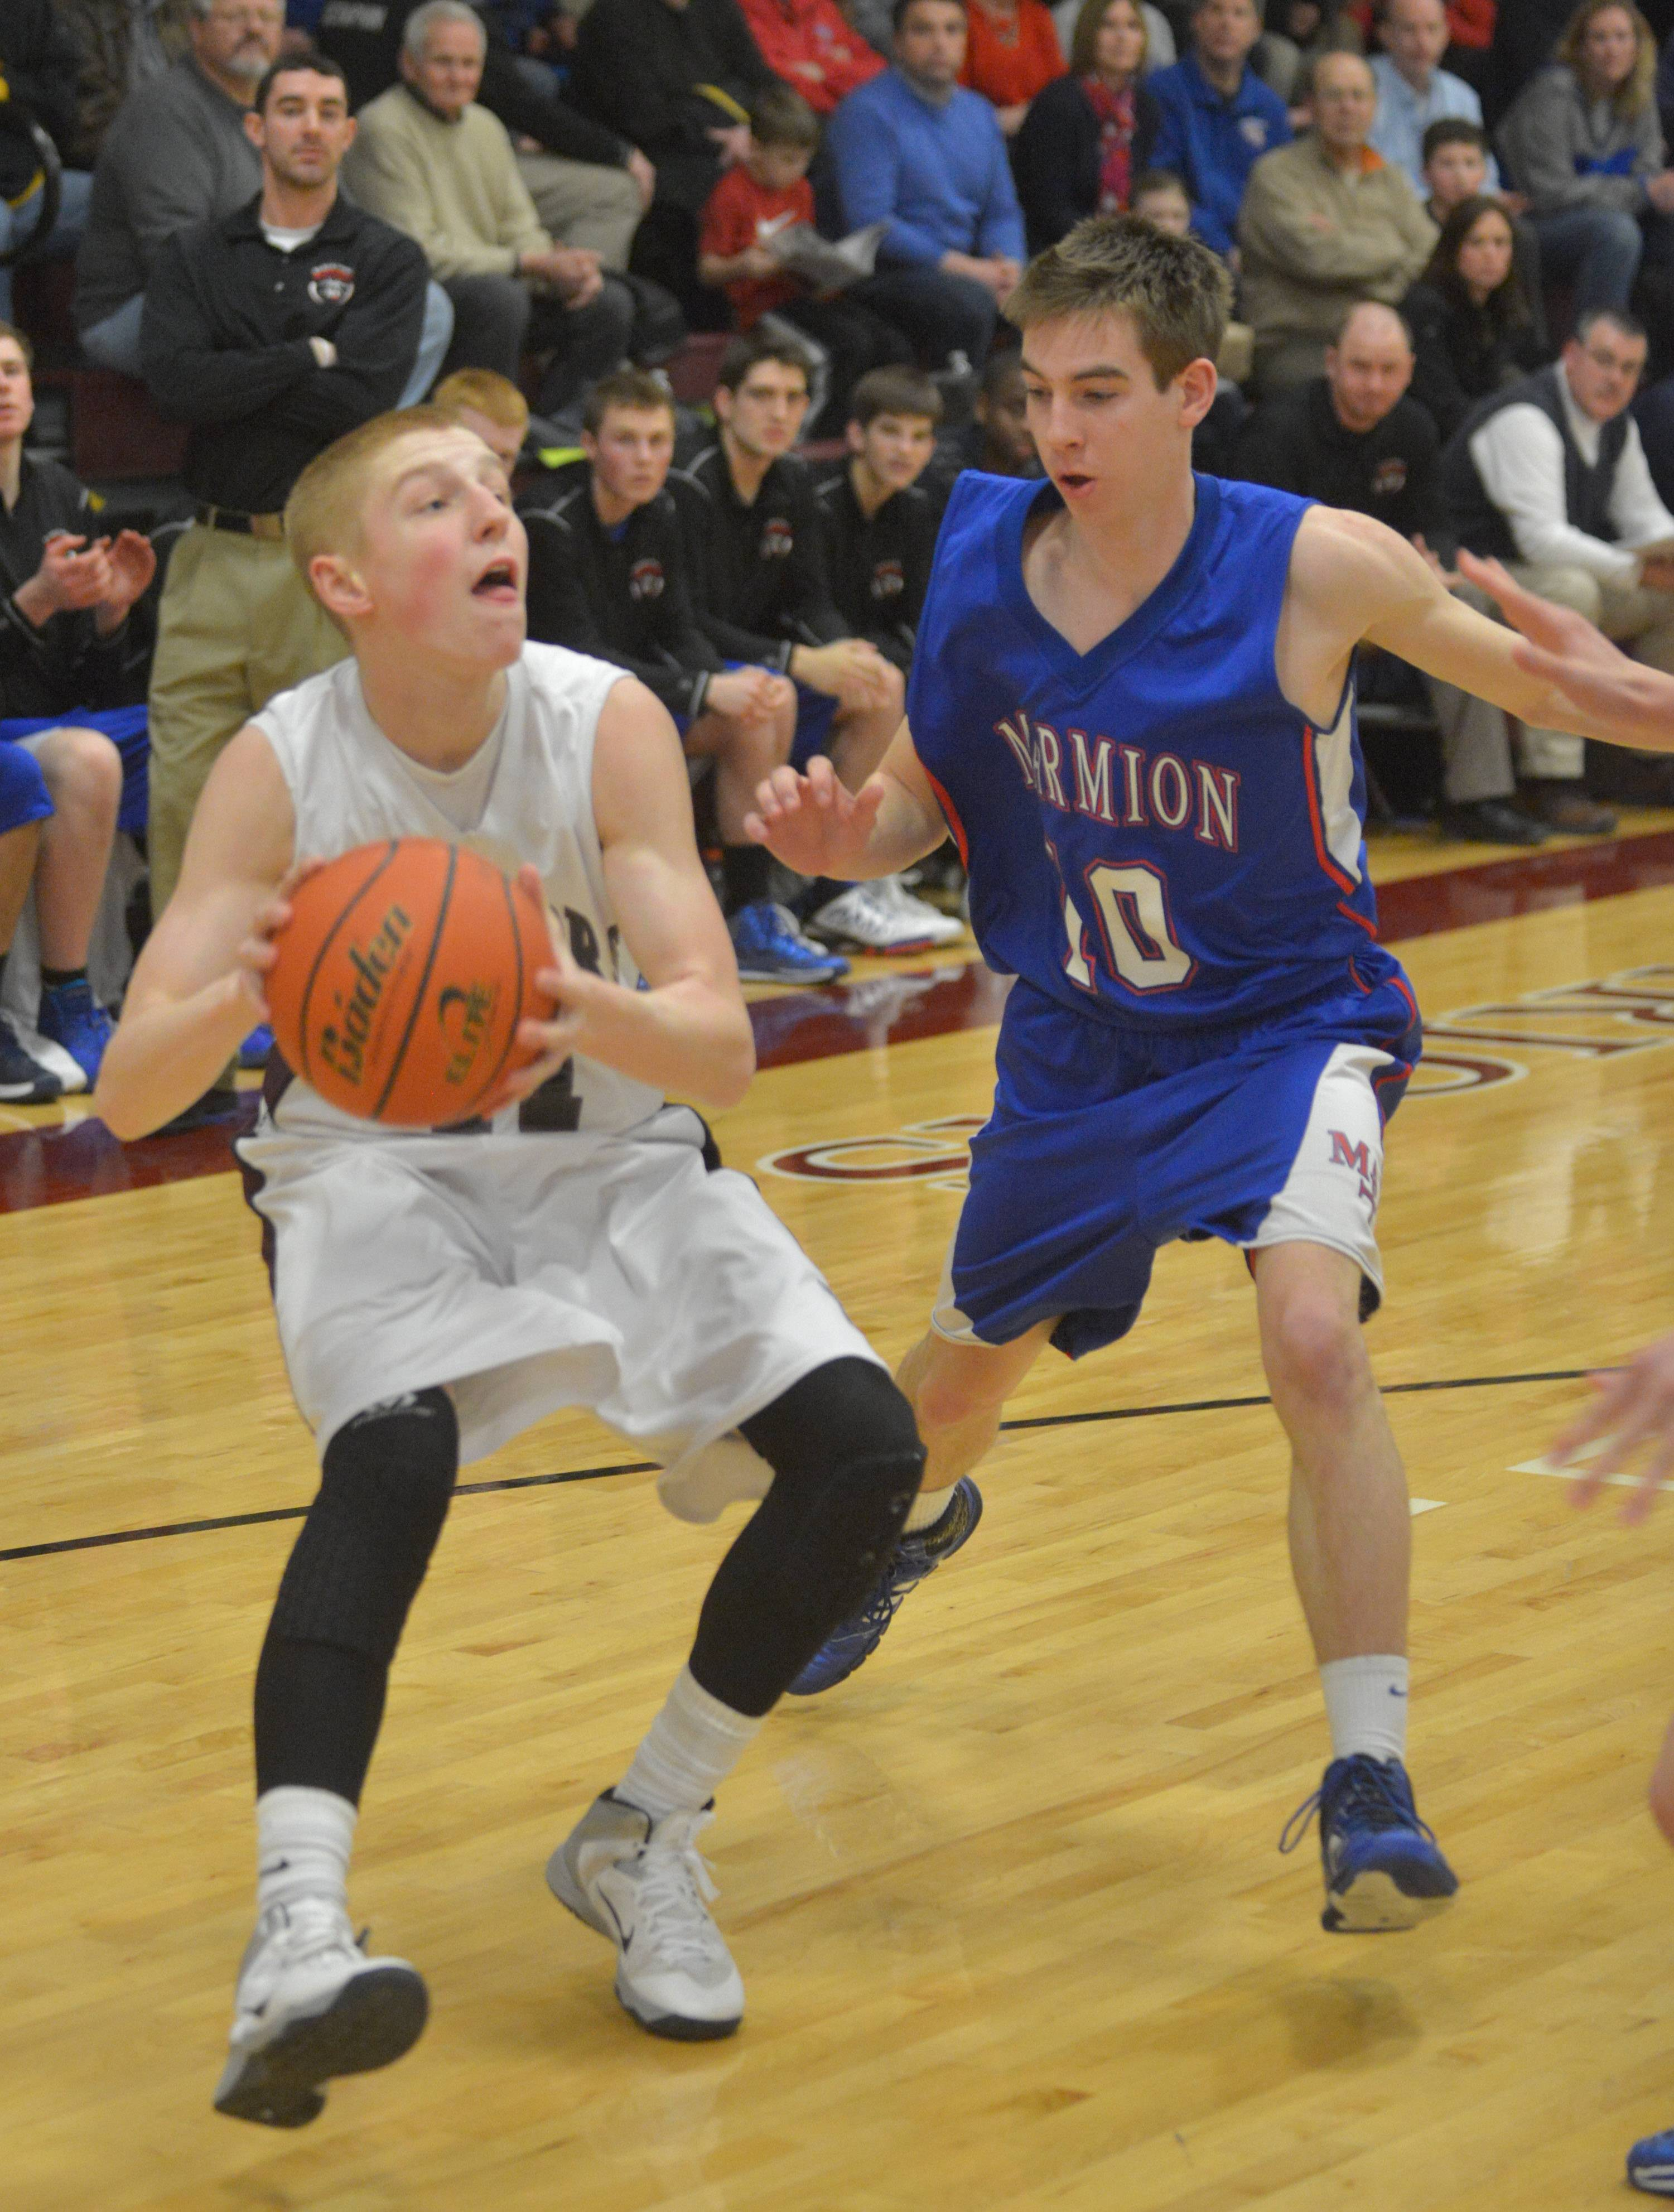 Images from the Wheaton Academy vs. Marmion Academy boys basketball game on Friday, Feb. 28, 2014.